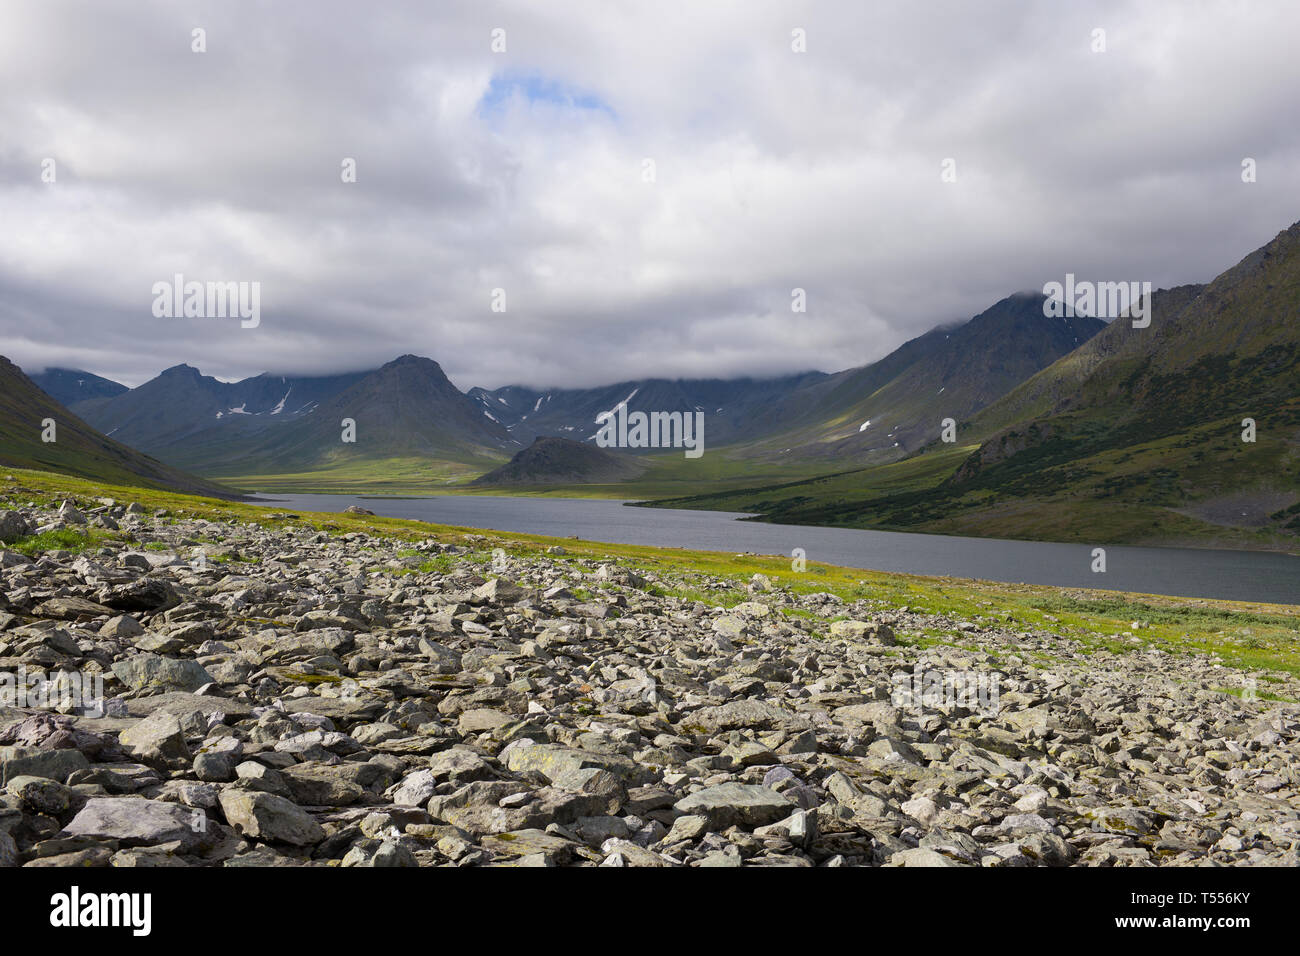 In the mountains of the Polar Urals - Stock Image